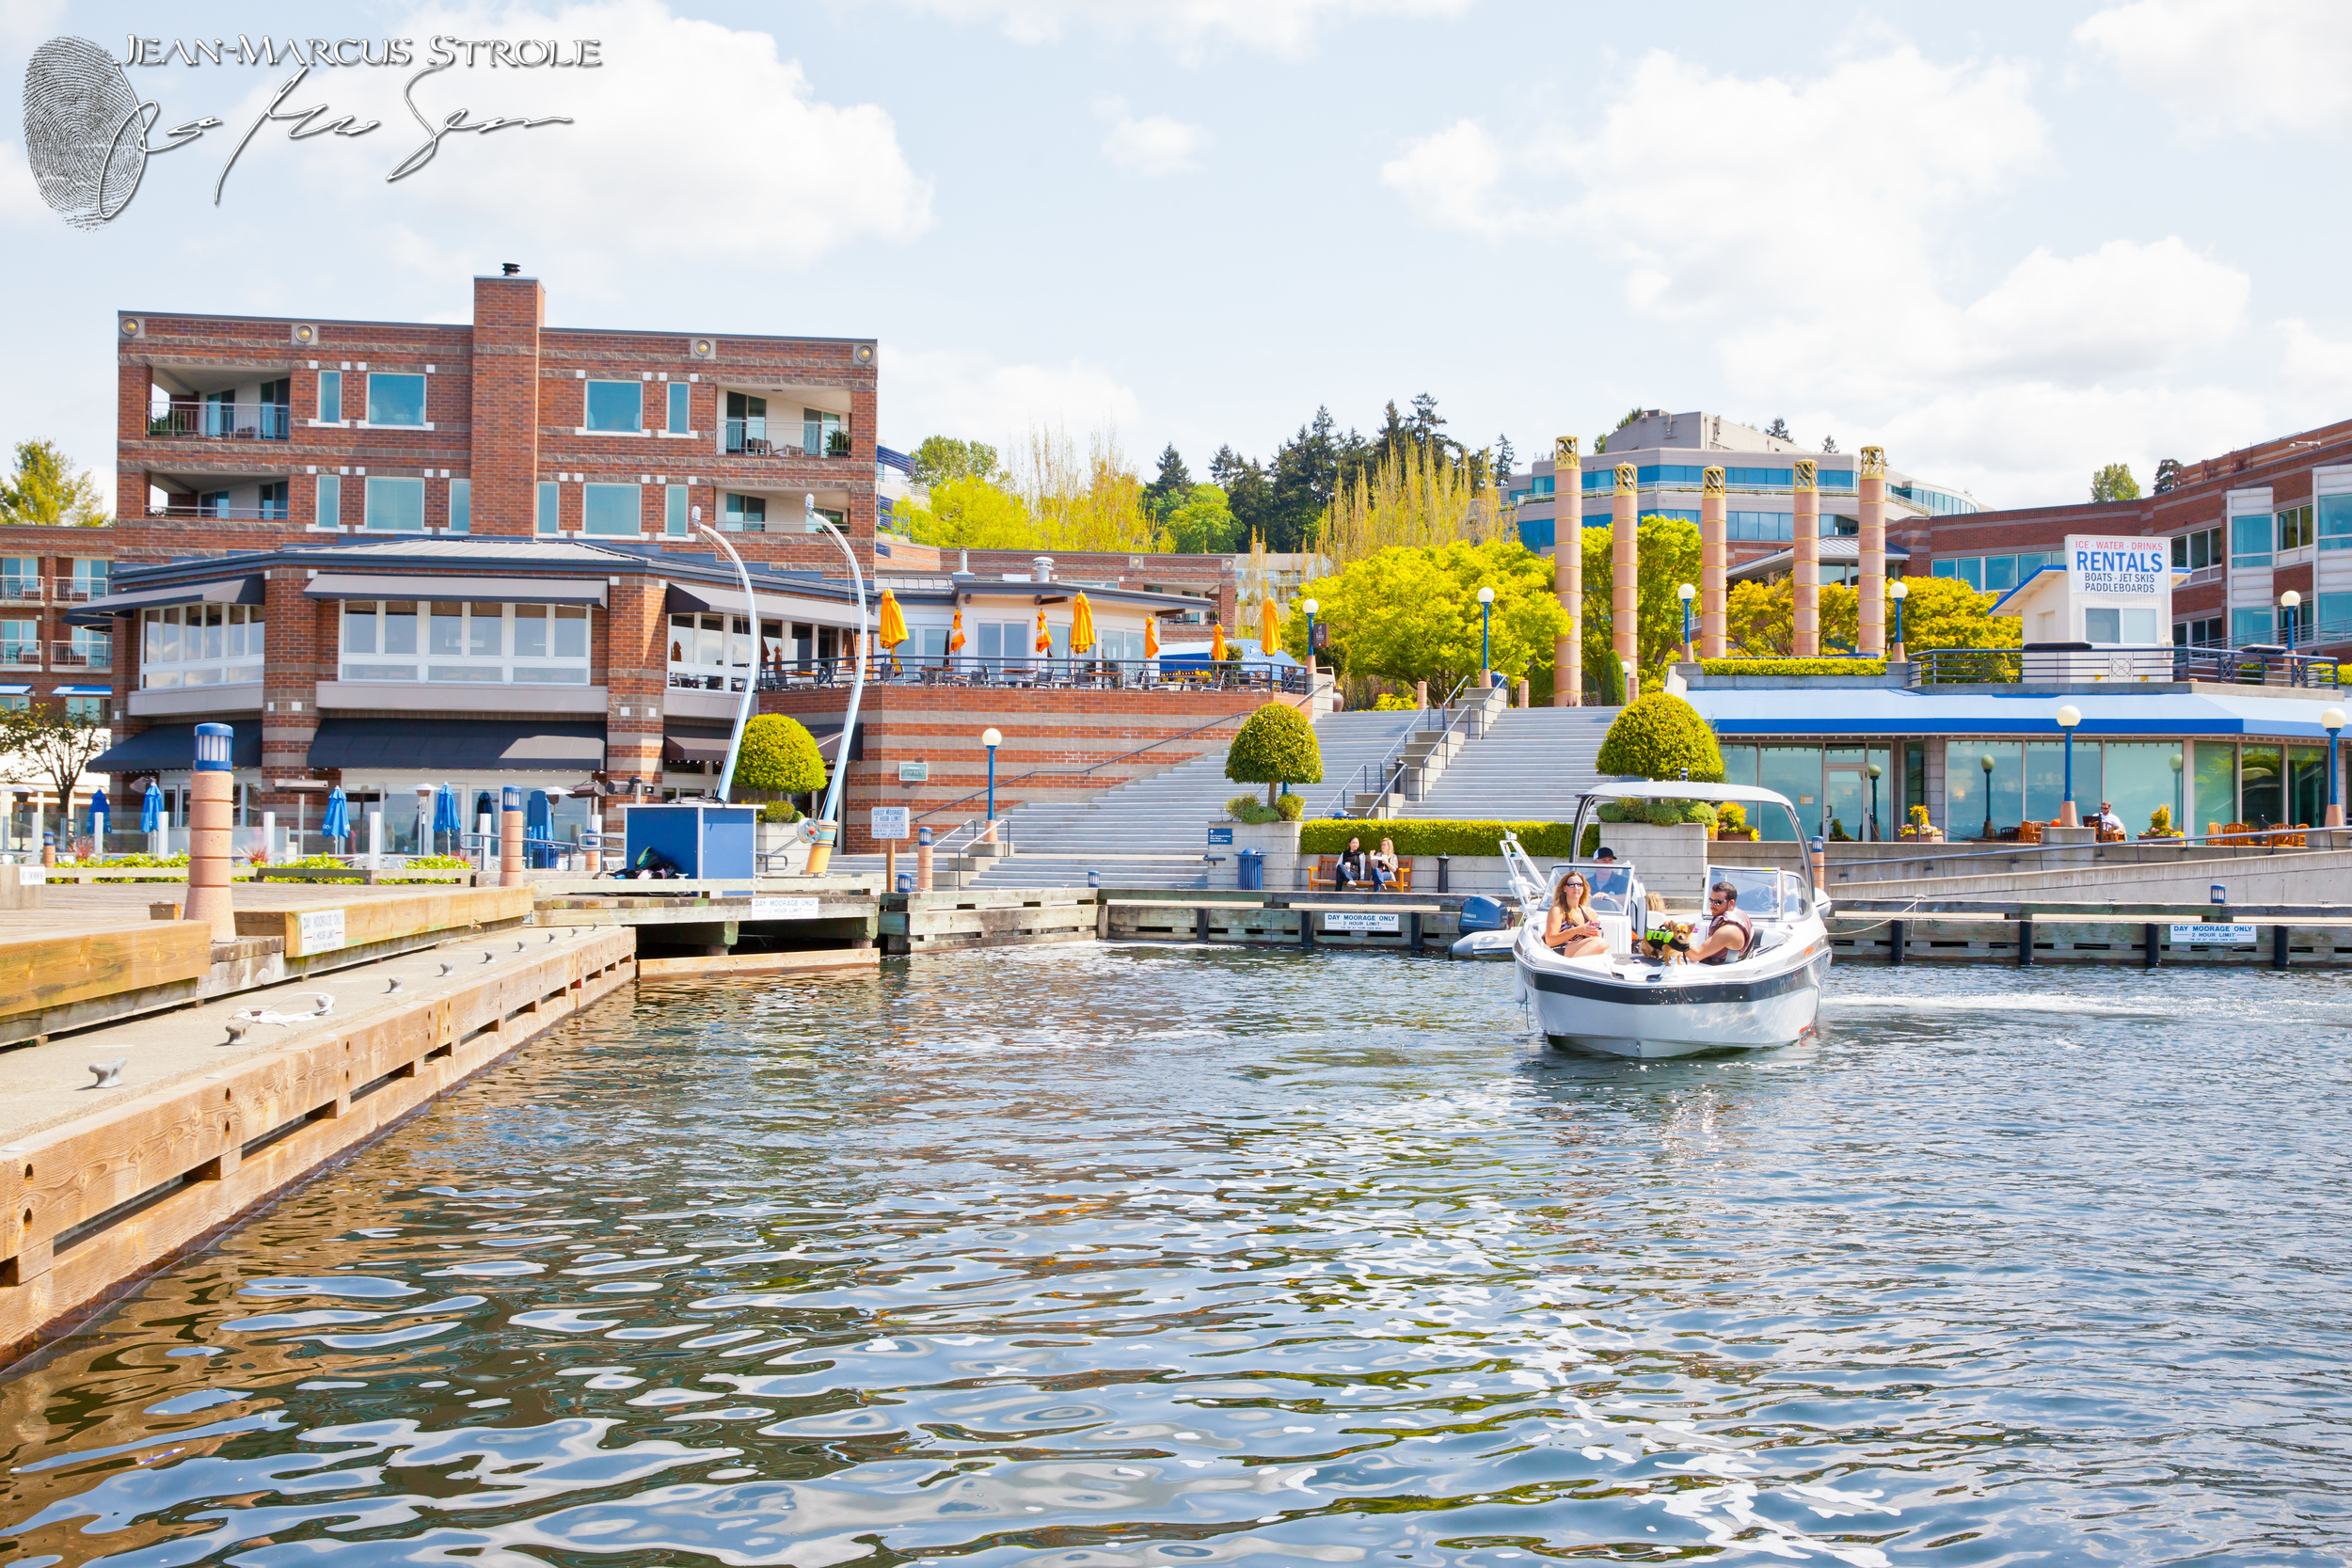 Carillon_Point_Waterfront_Adventures-Jean-Marcus_Strole_Photography-54.jpg